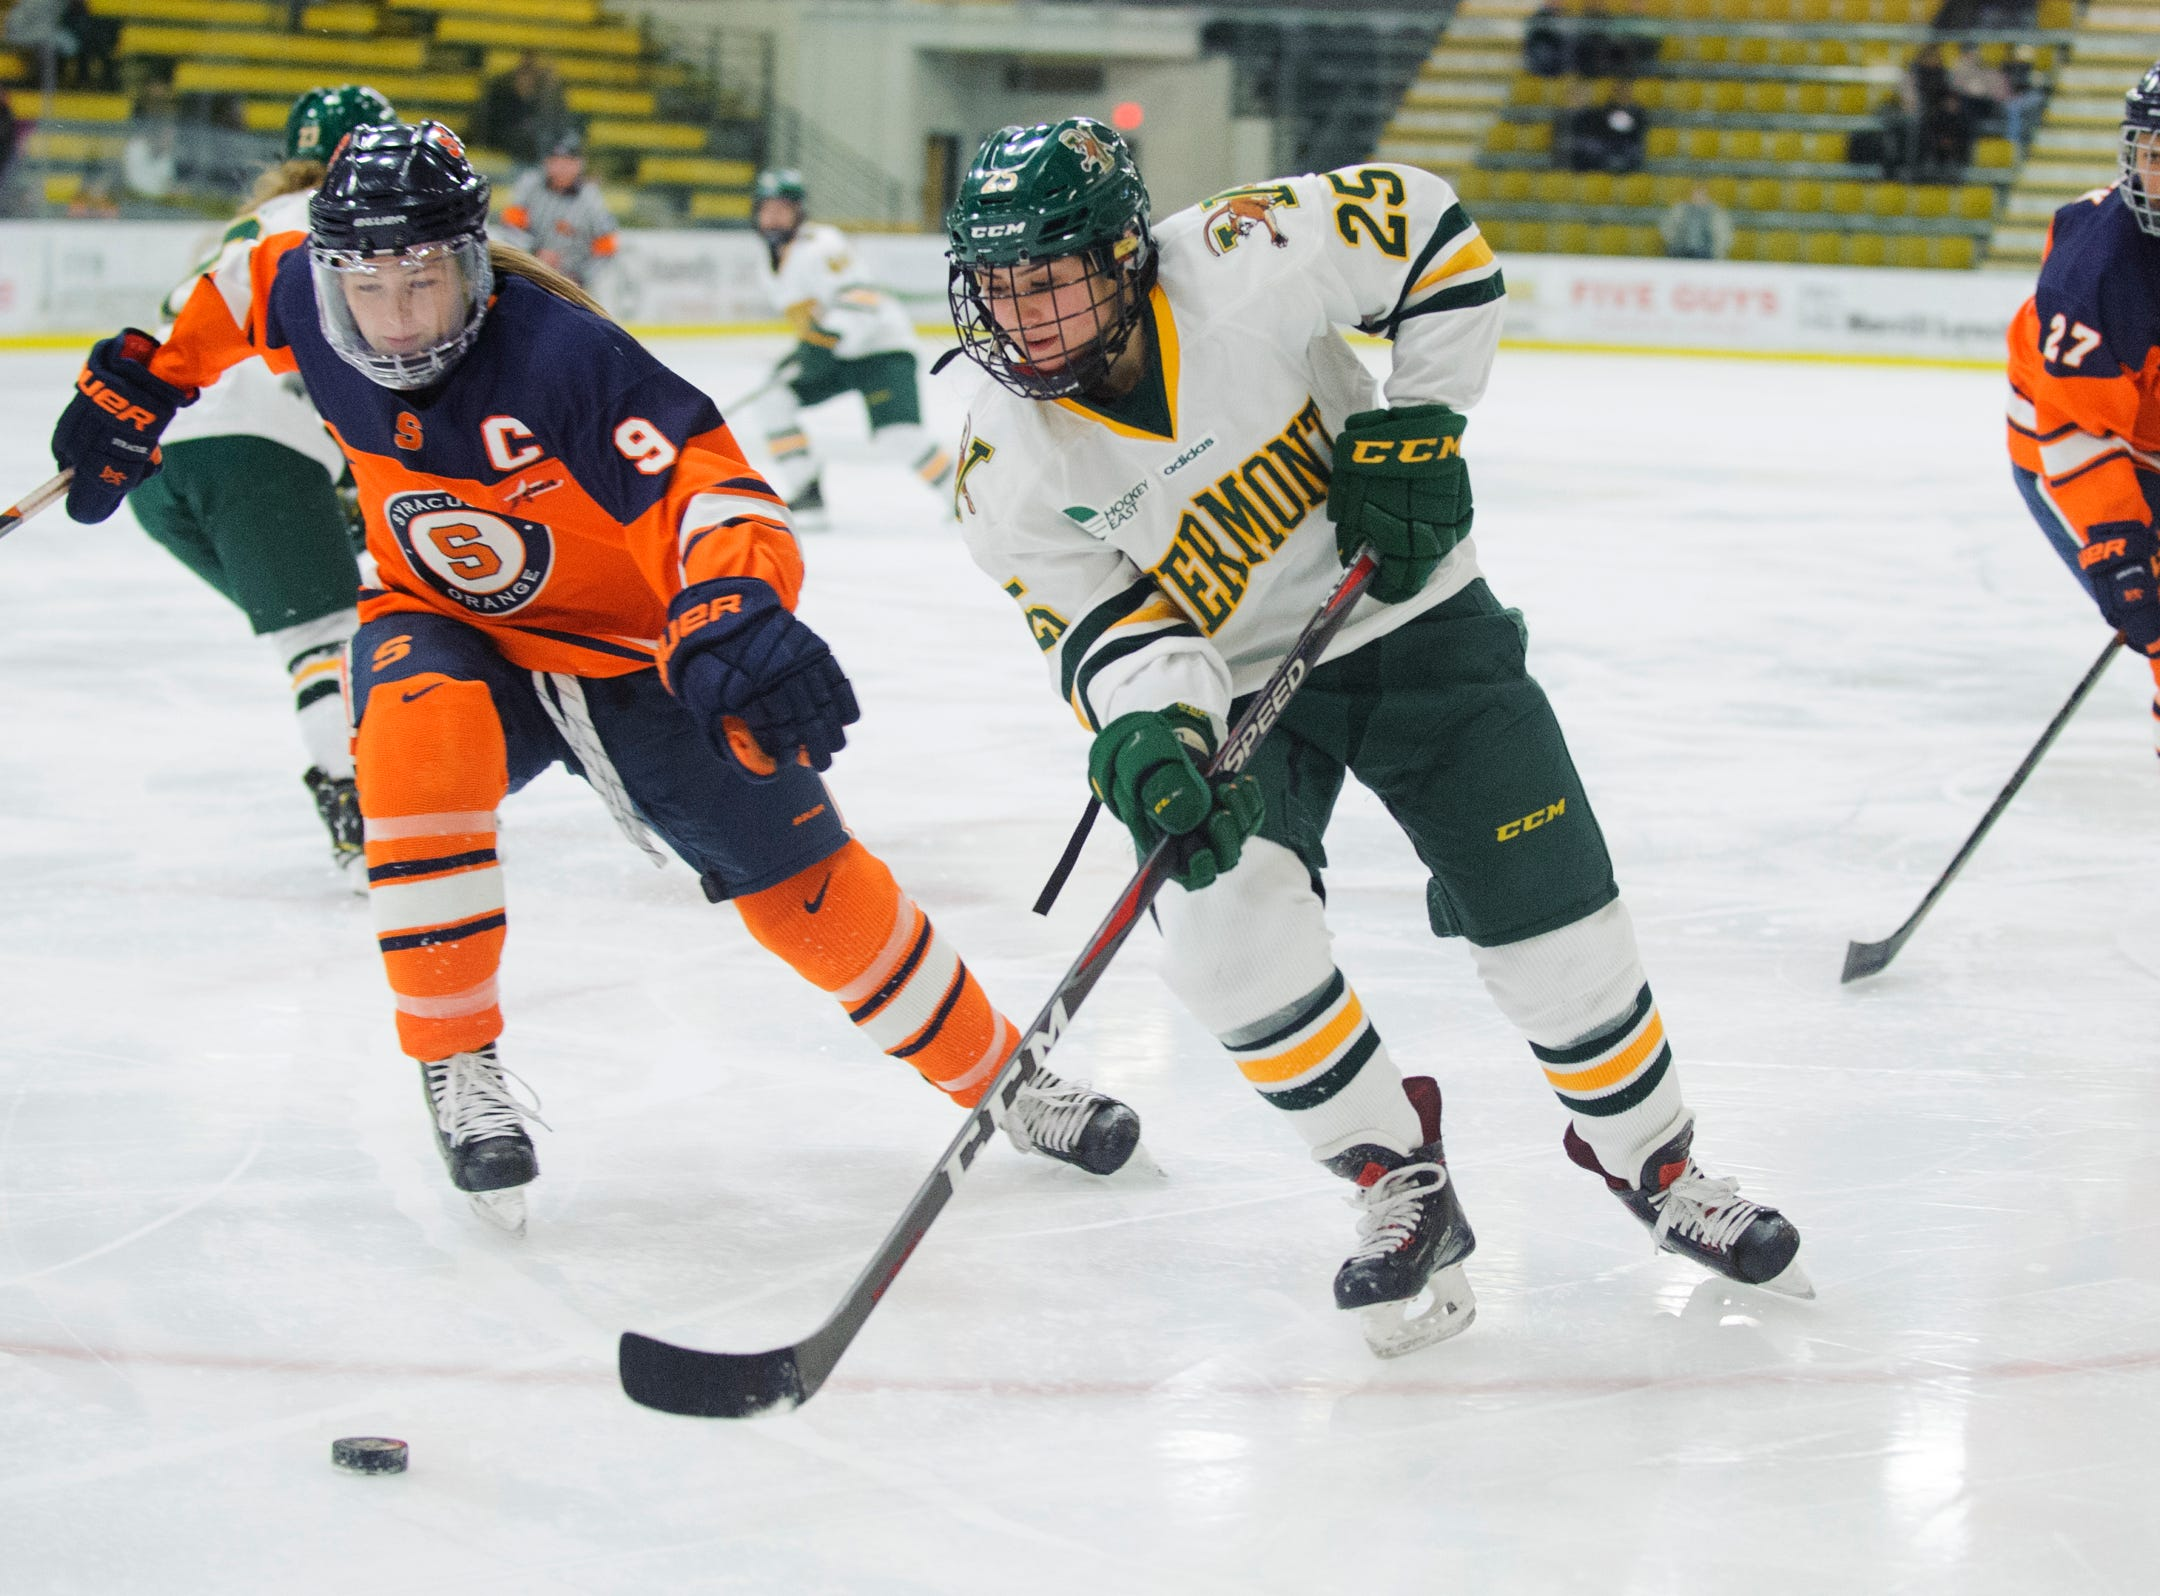 Vermont's Alyssa Holmes (25) skates past Syracuse's Allie Monroe (9) with the puck during the women's hockey game between the Syracuse Orange and the Vermont Catamounts at Gutterson Field House on Friday night November 23, 2018 in Burlington.